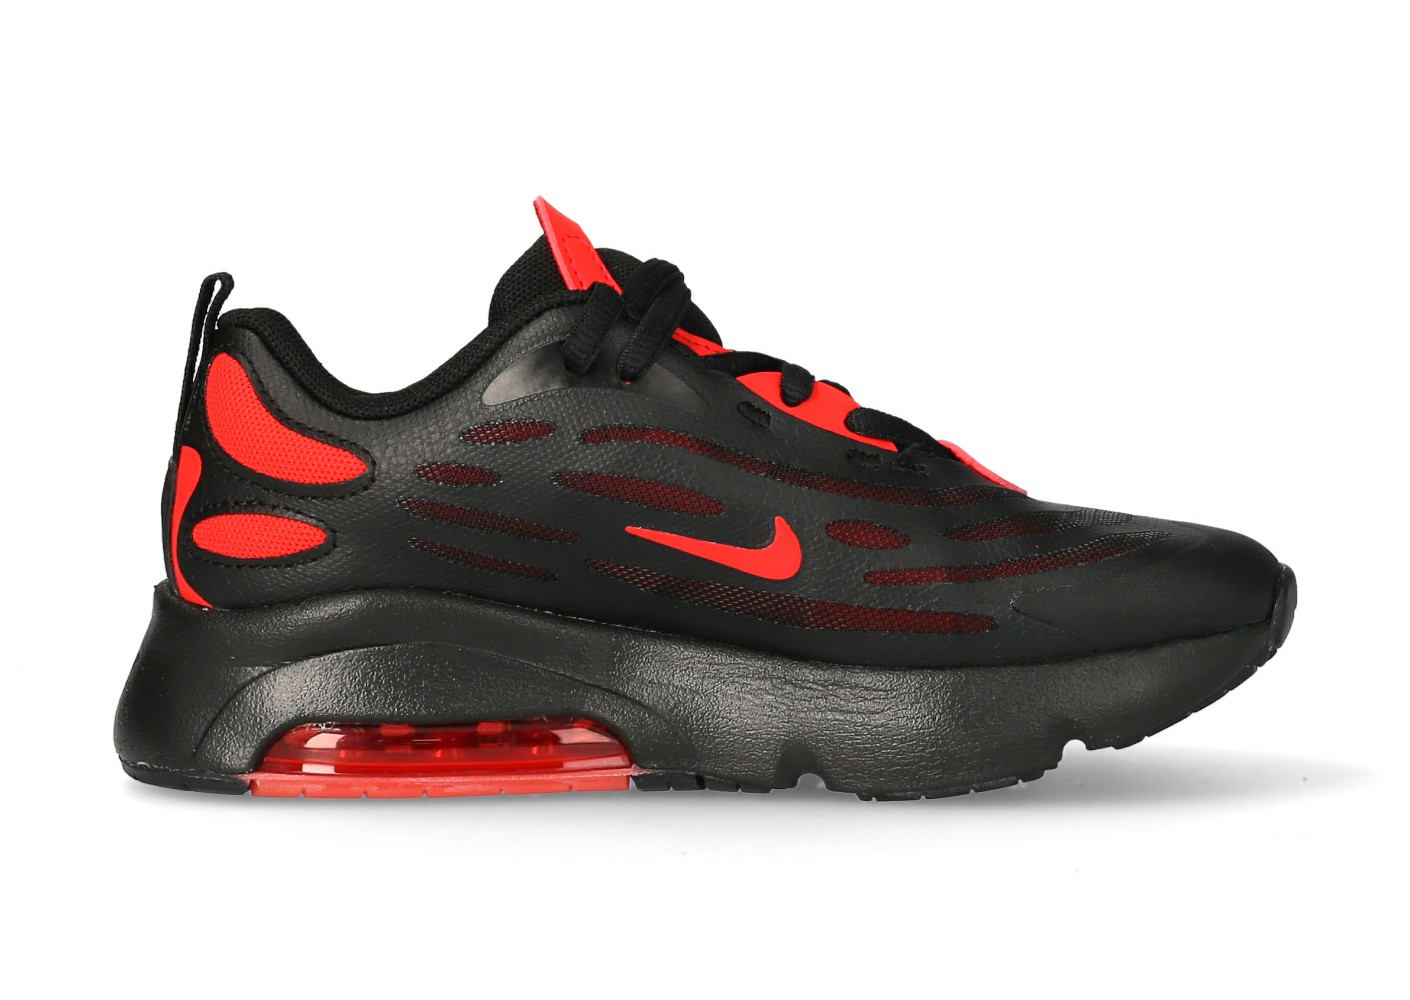 Nike Air Max Exosense chile red enfant - Chaussures Prix stylés ...